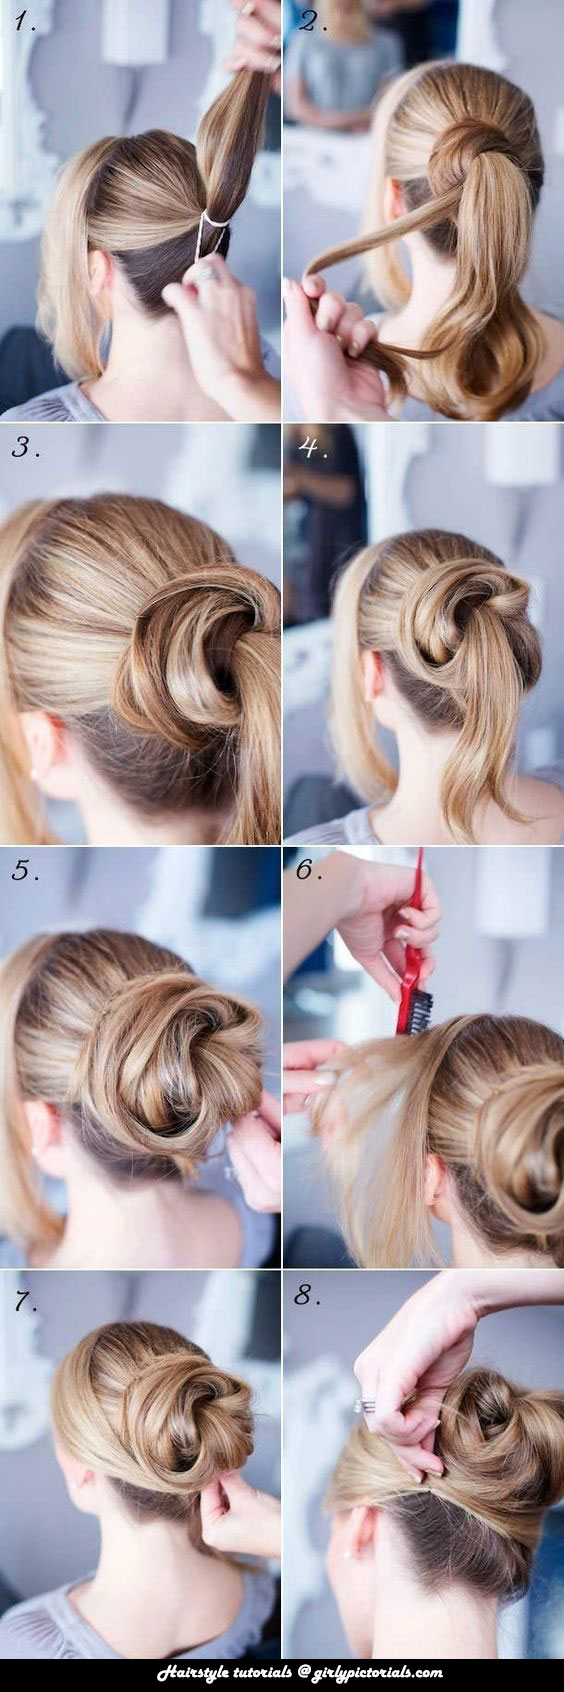 How To Make Low Bun Hairstyles Step By Step Ideas For Long Hair